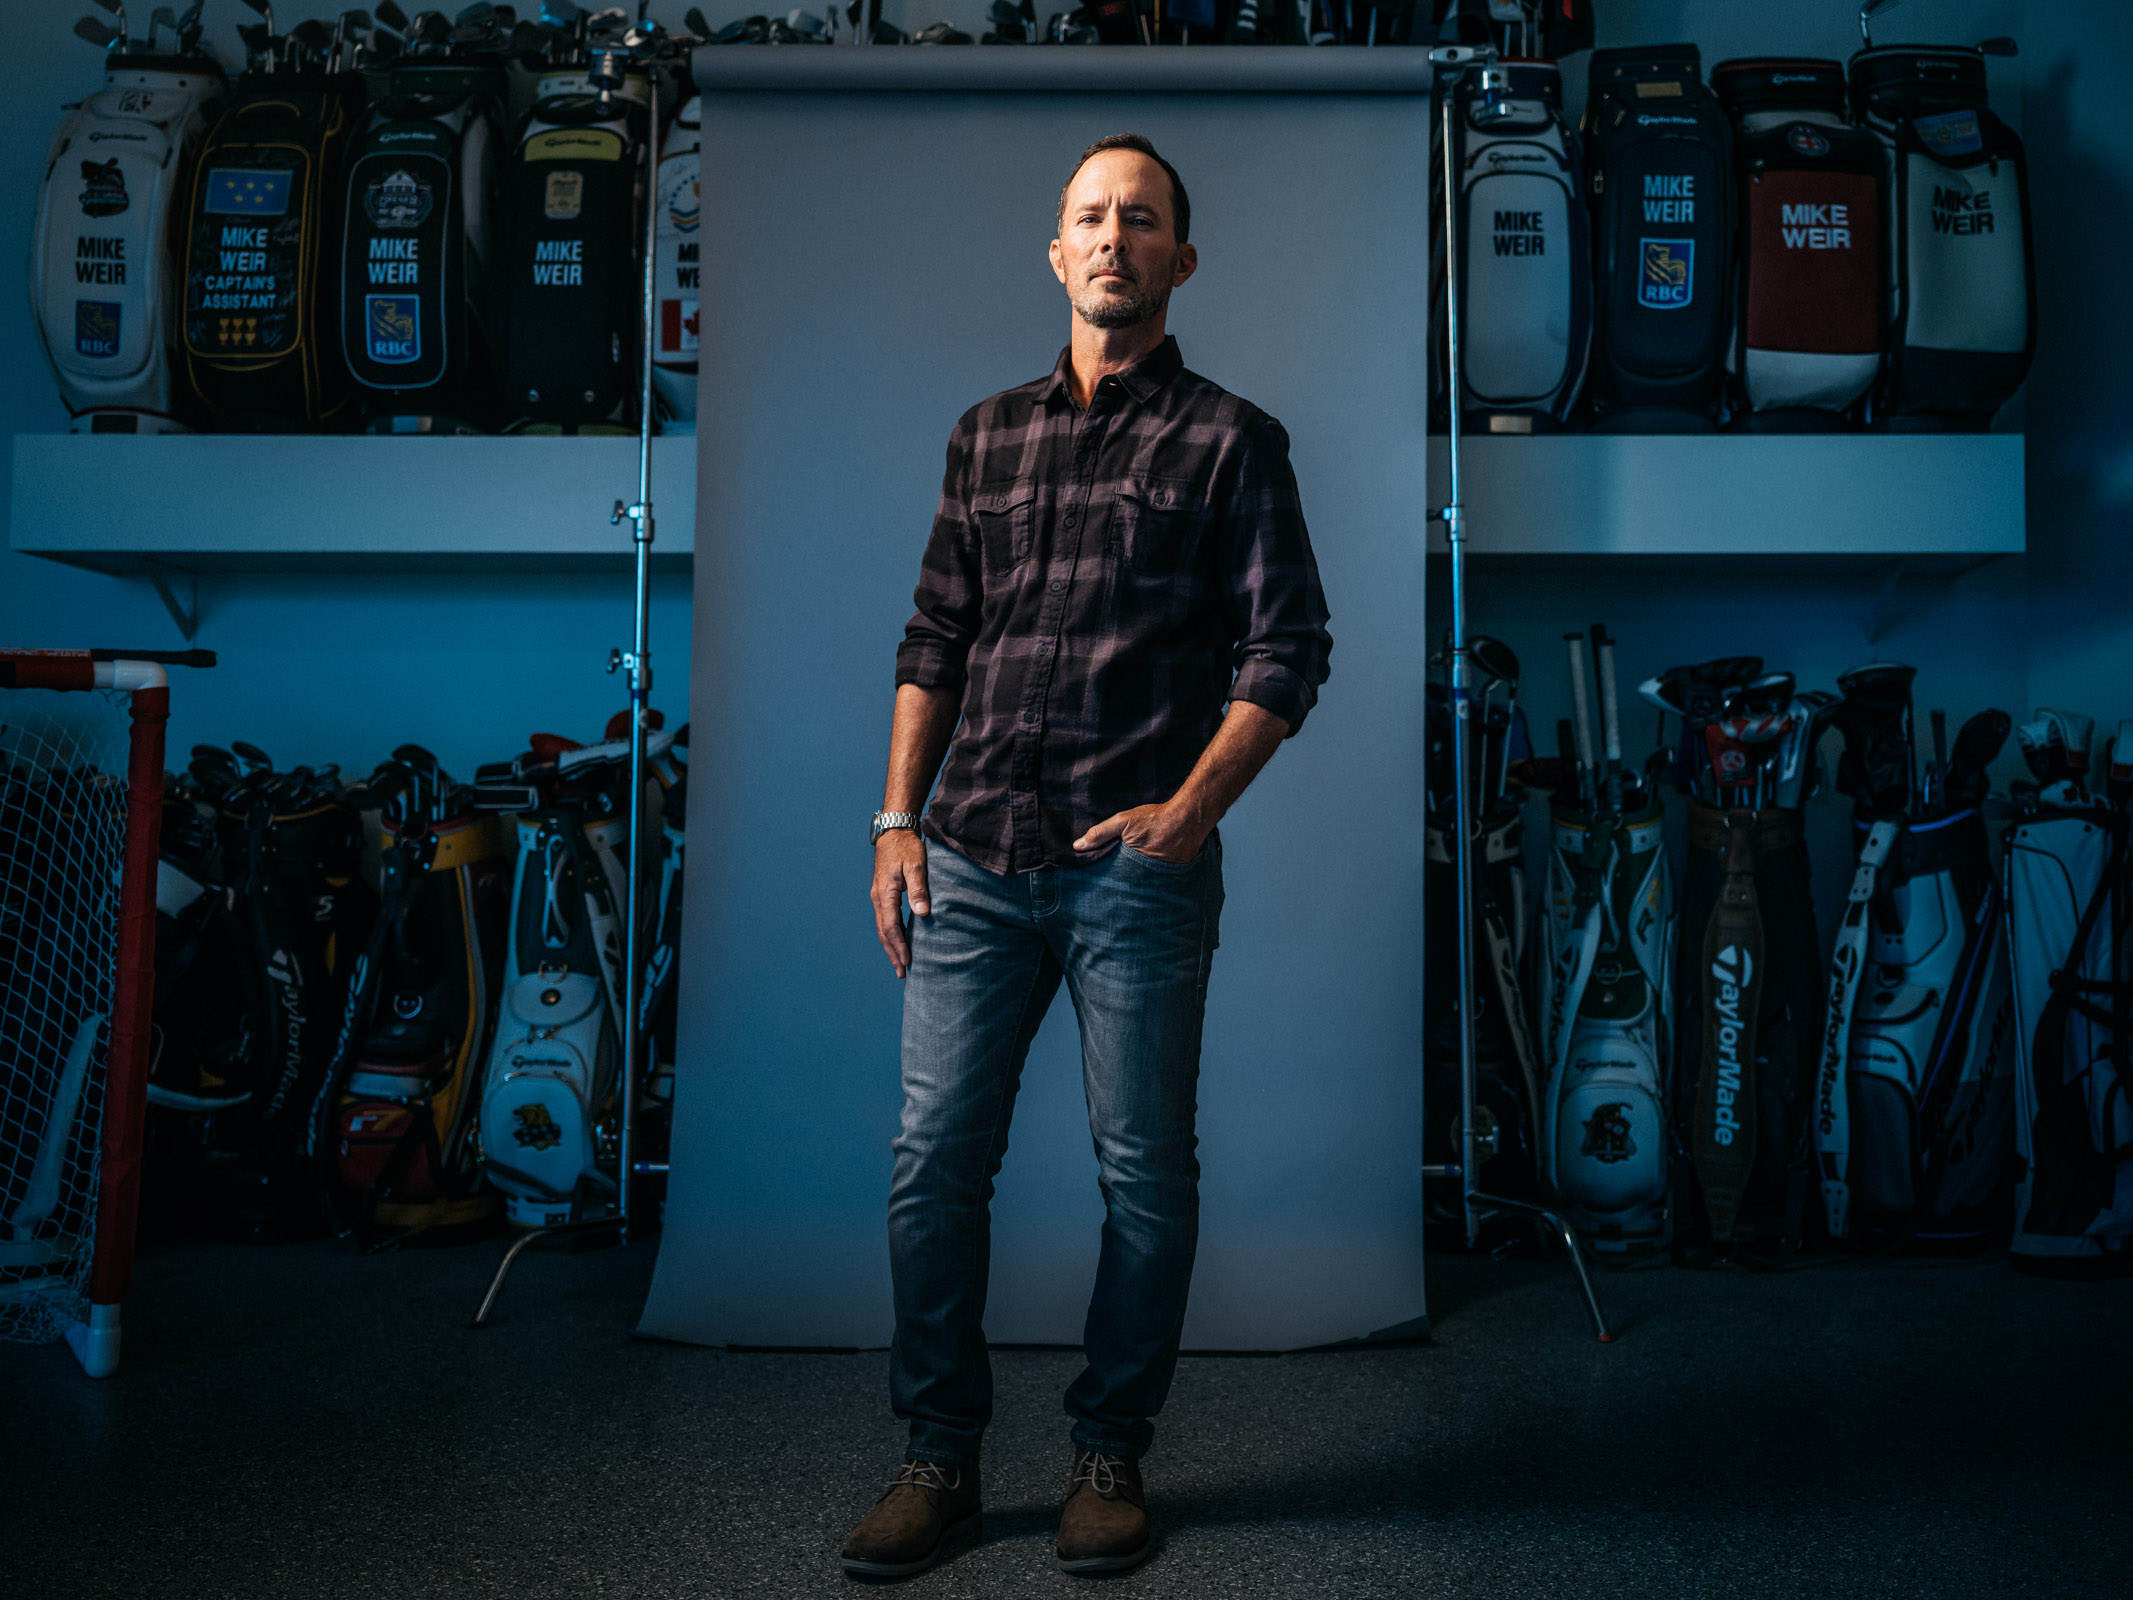 2021-01-29-Golf-Digest-Mike-Weir-0356